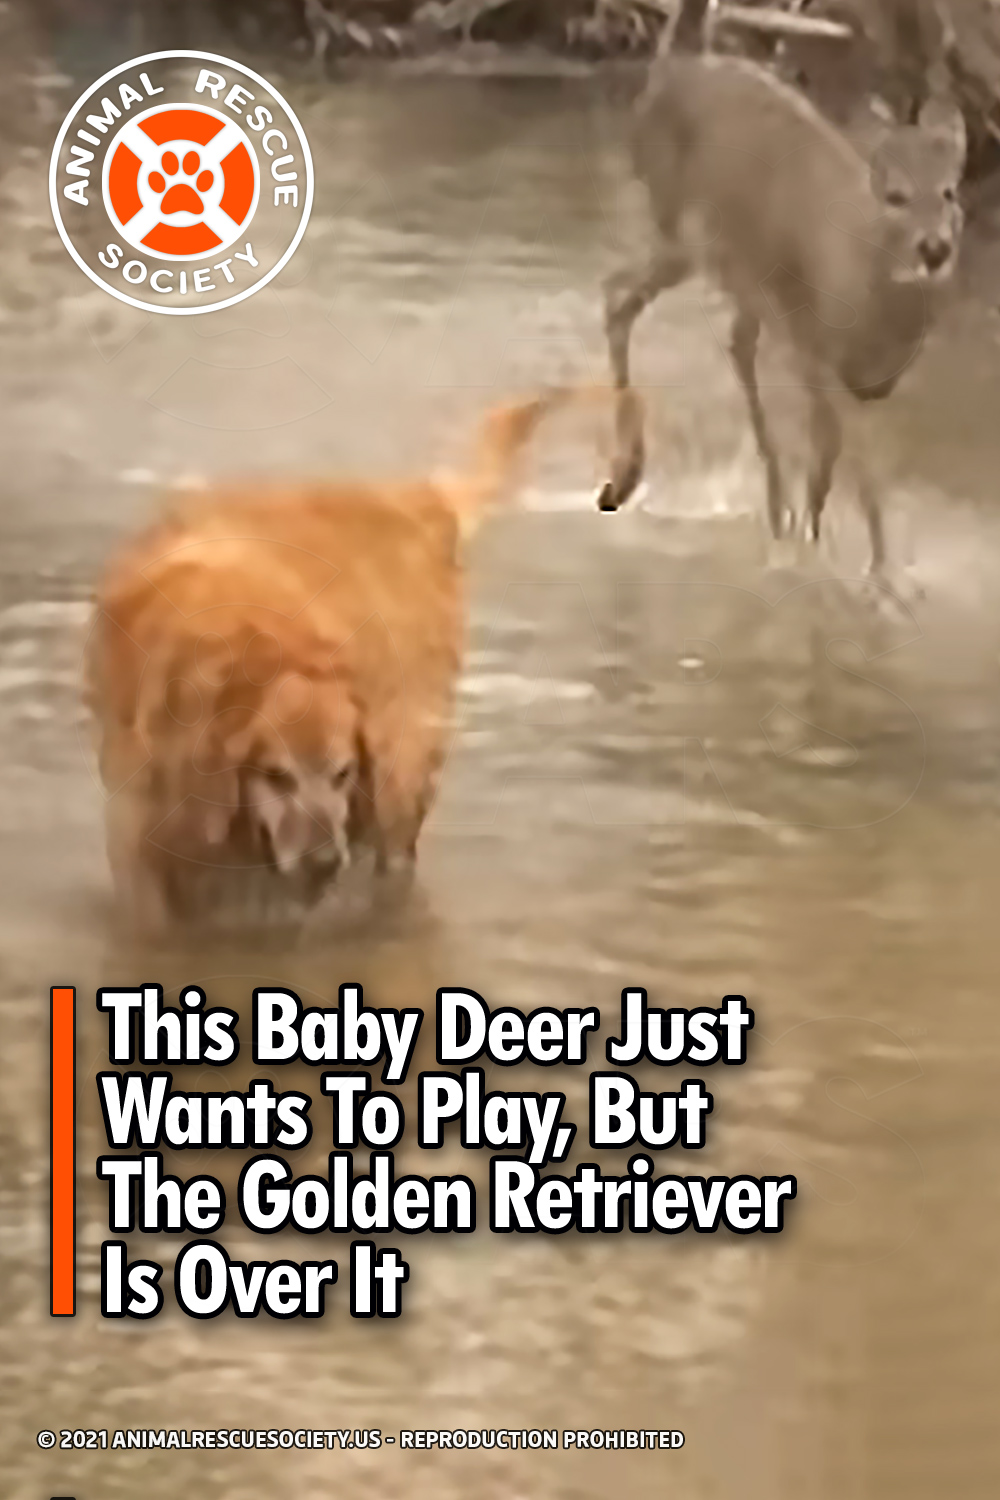 This Baby Deer Just Wants To Play, But The Golden Retriever Is Over It